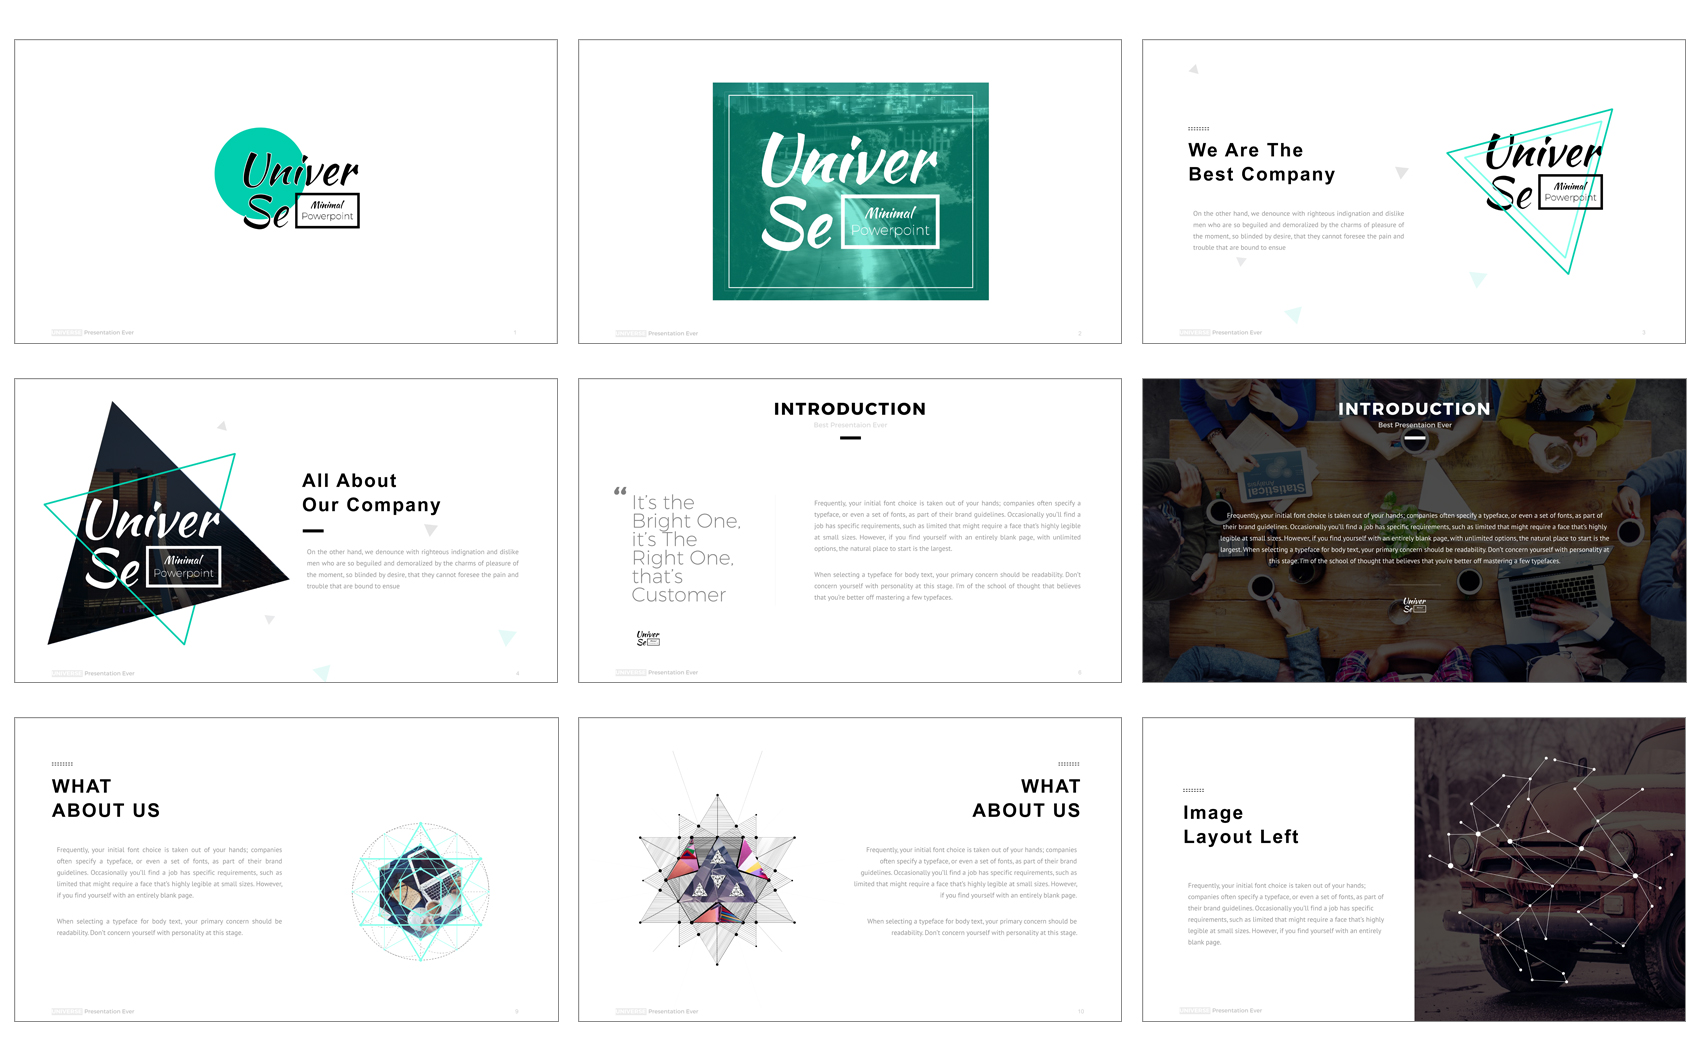 Universe powerpoint template 64464 universe powerpoint template toneelgroepblik Image collections